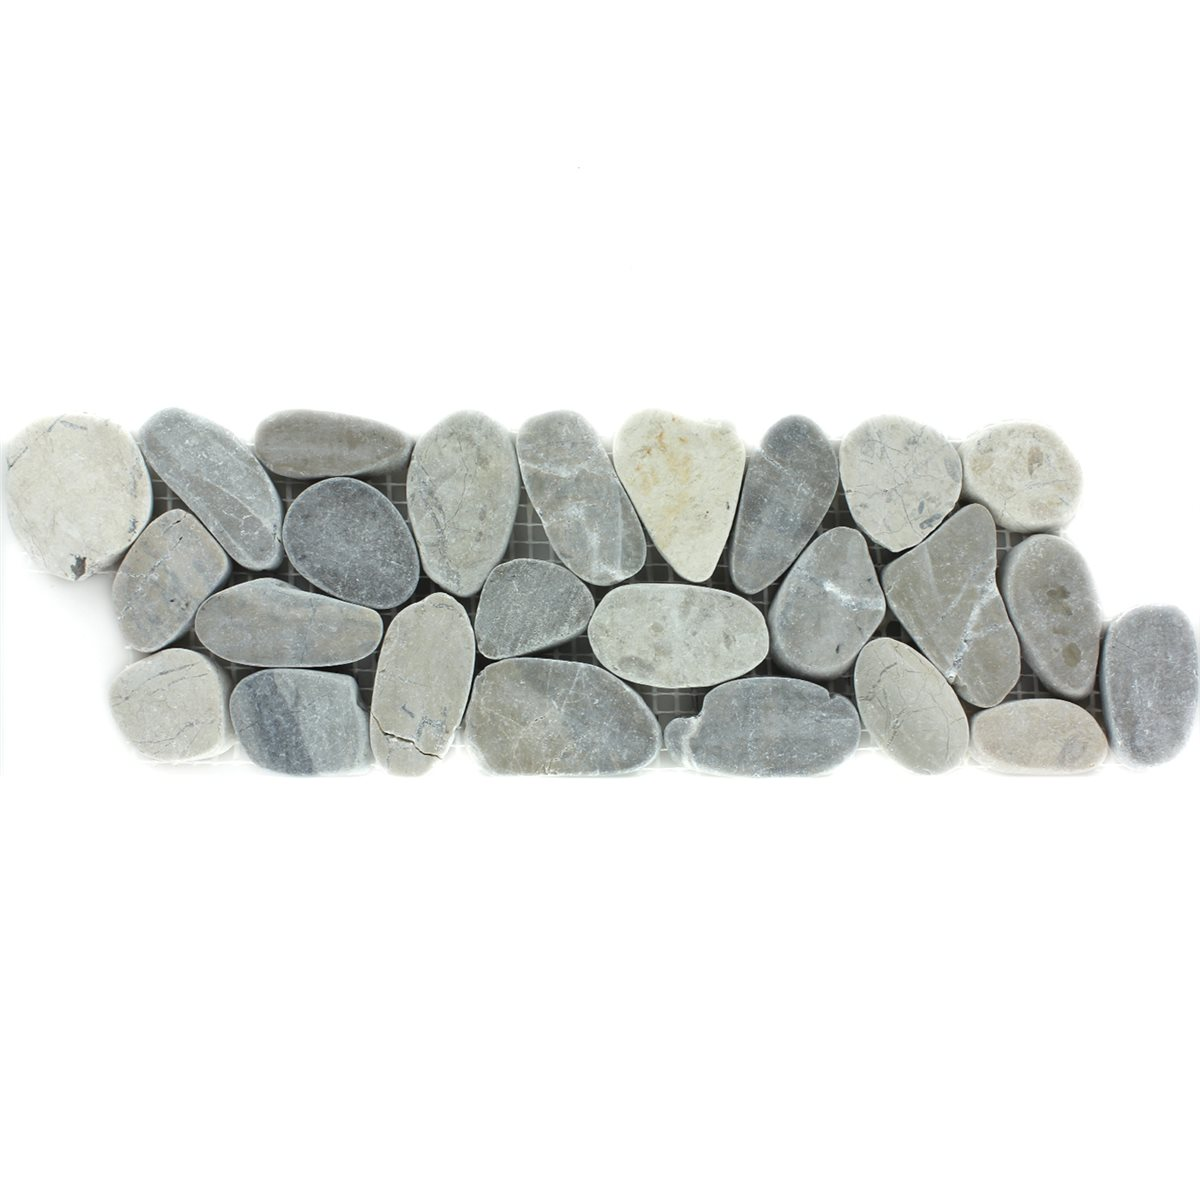 river pebbles border 10x30cm light grey pebbles-lz69240m, Wohnzimmer dekoo